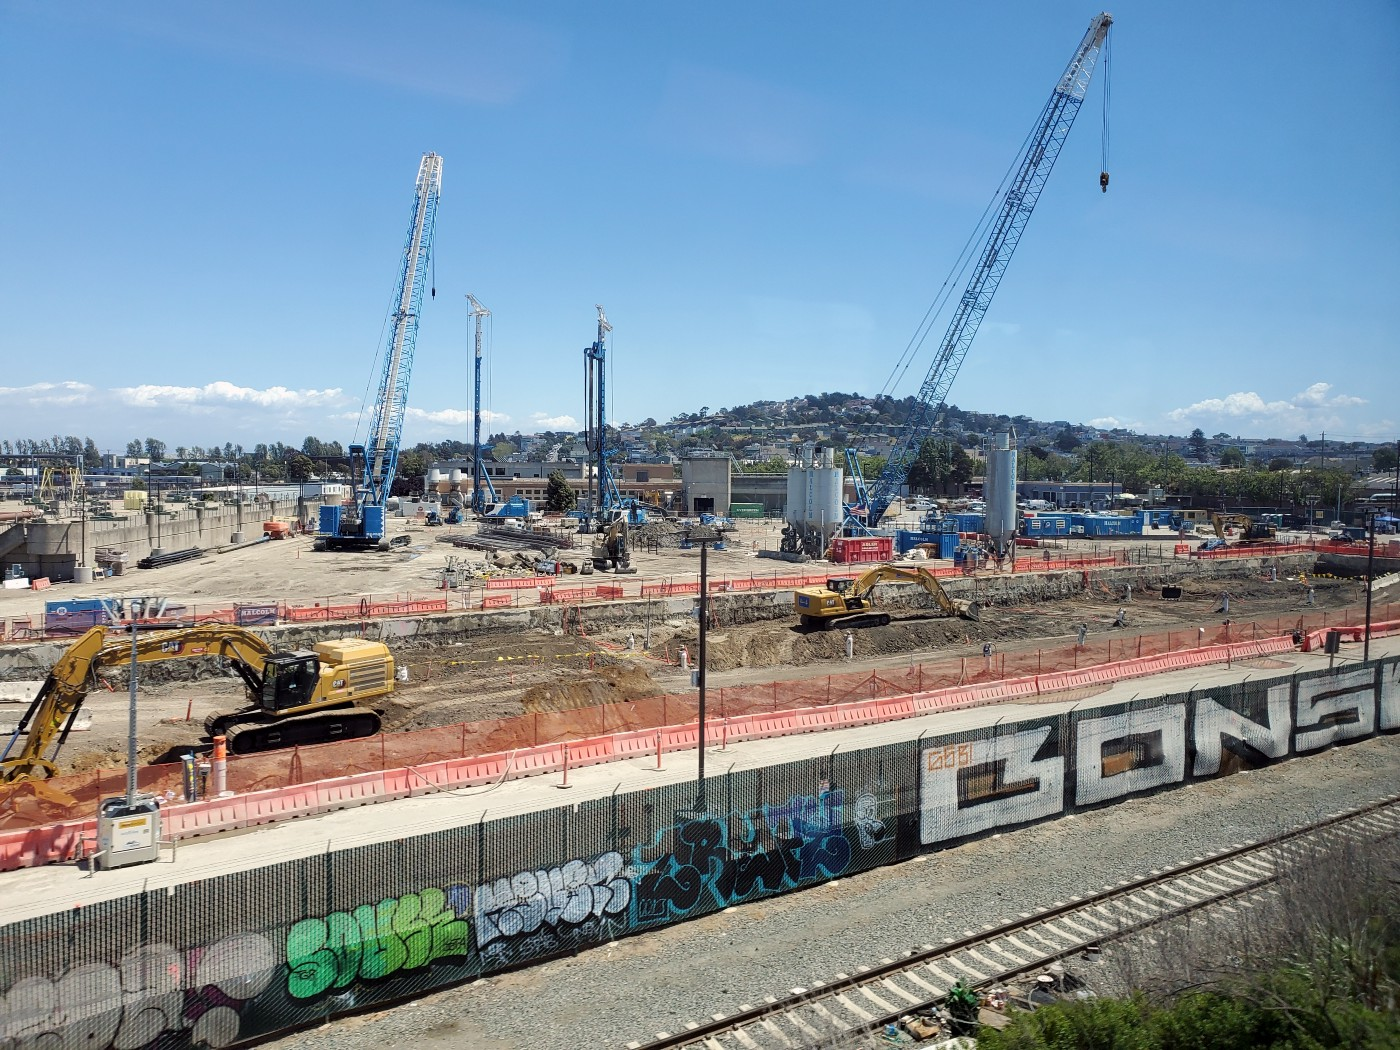 Two blue cranes and two other construction vehicles continue work at the worksite for The Walsh Group Ltd. against a bright blue sky while workers focus on concrete compressive strength monitoring..